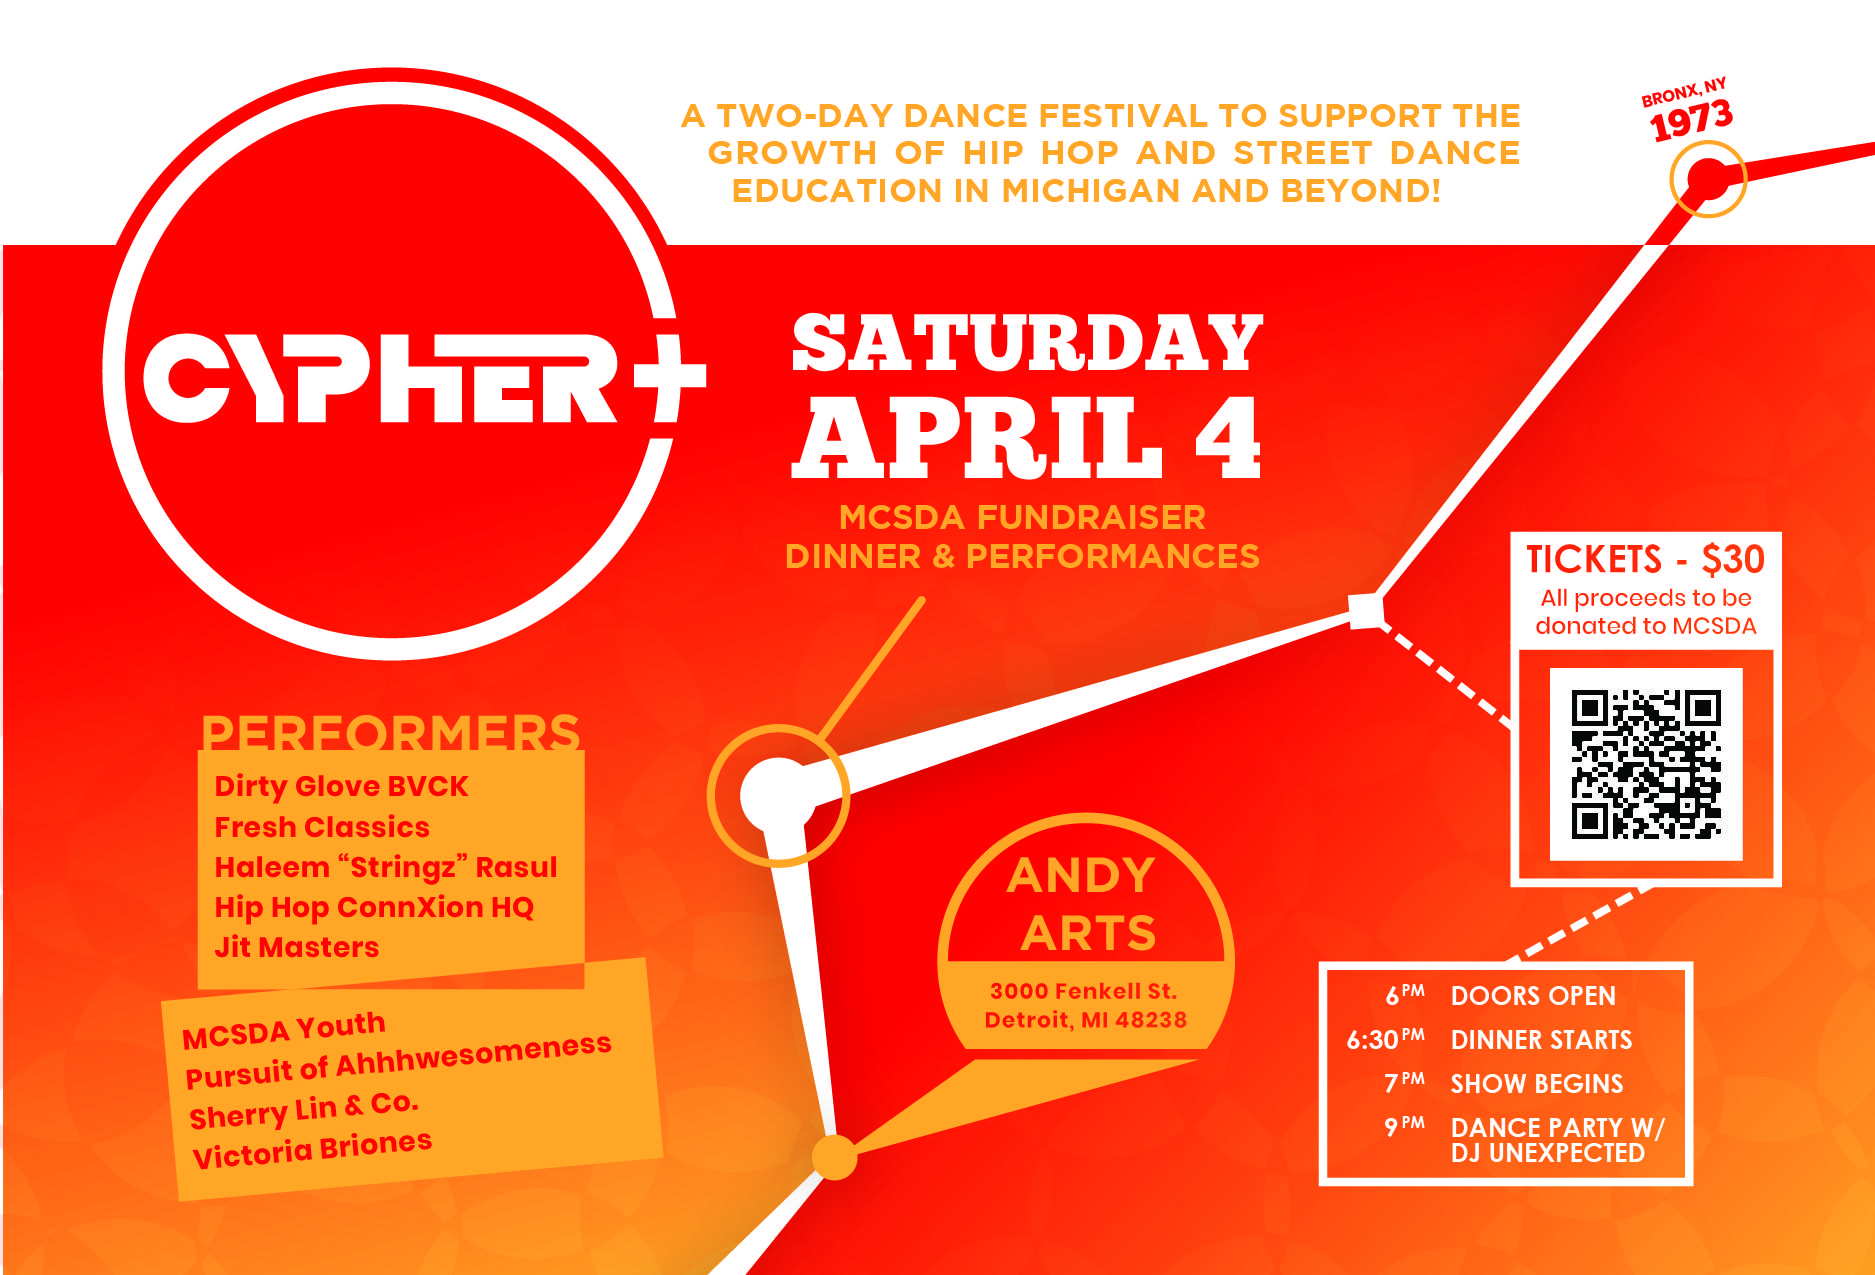 CYPHER+ Dance Festival Day One